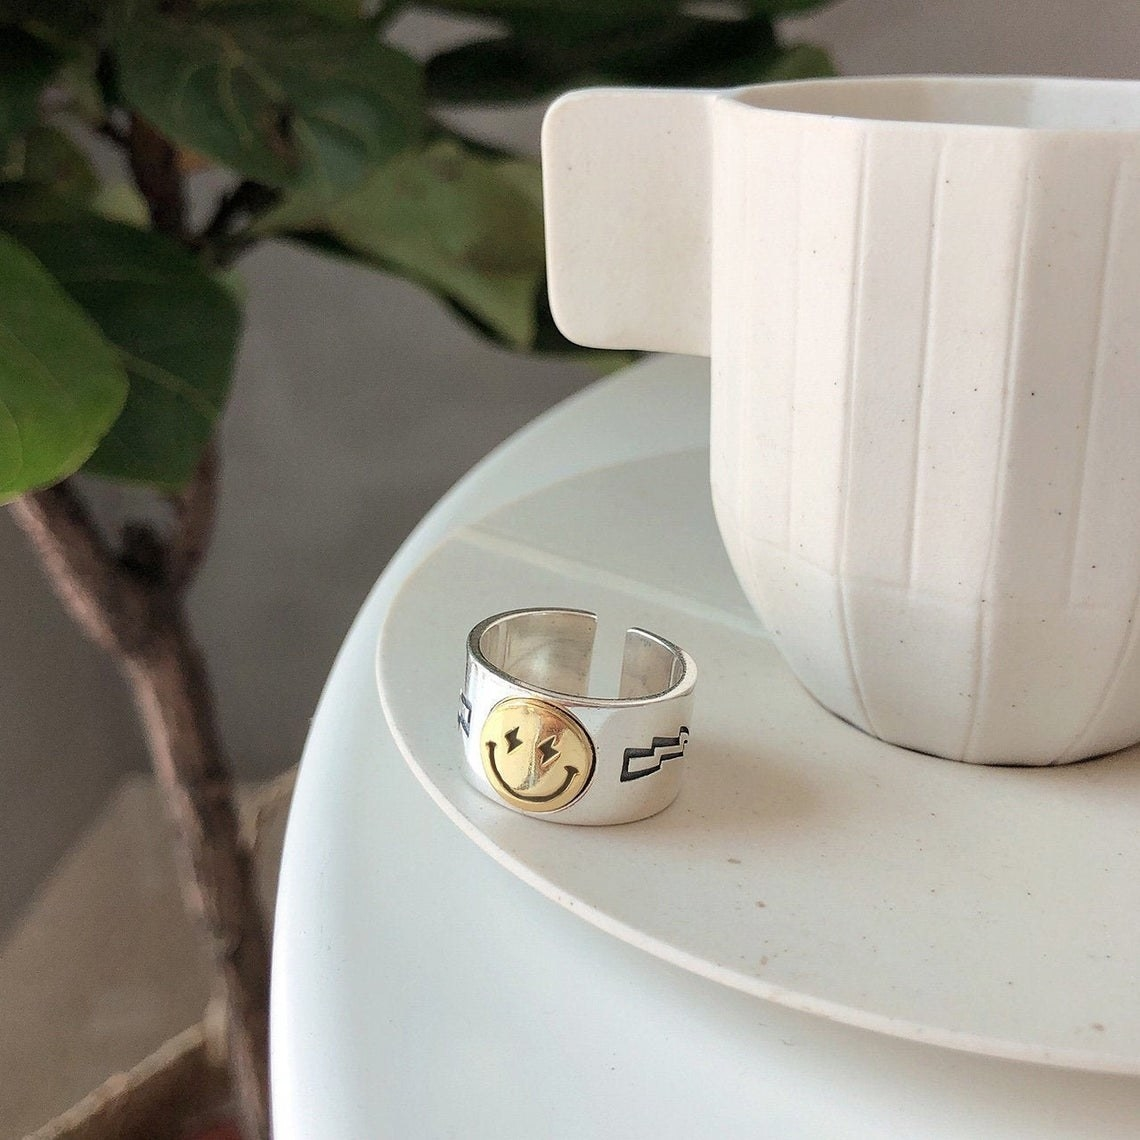 The smiley face ring next to a fiddle leaf fig tree and mug